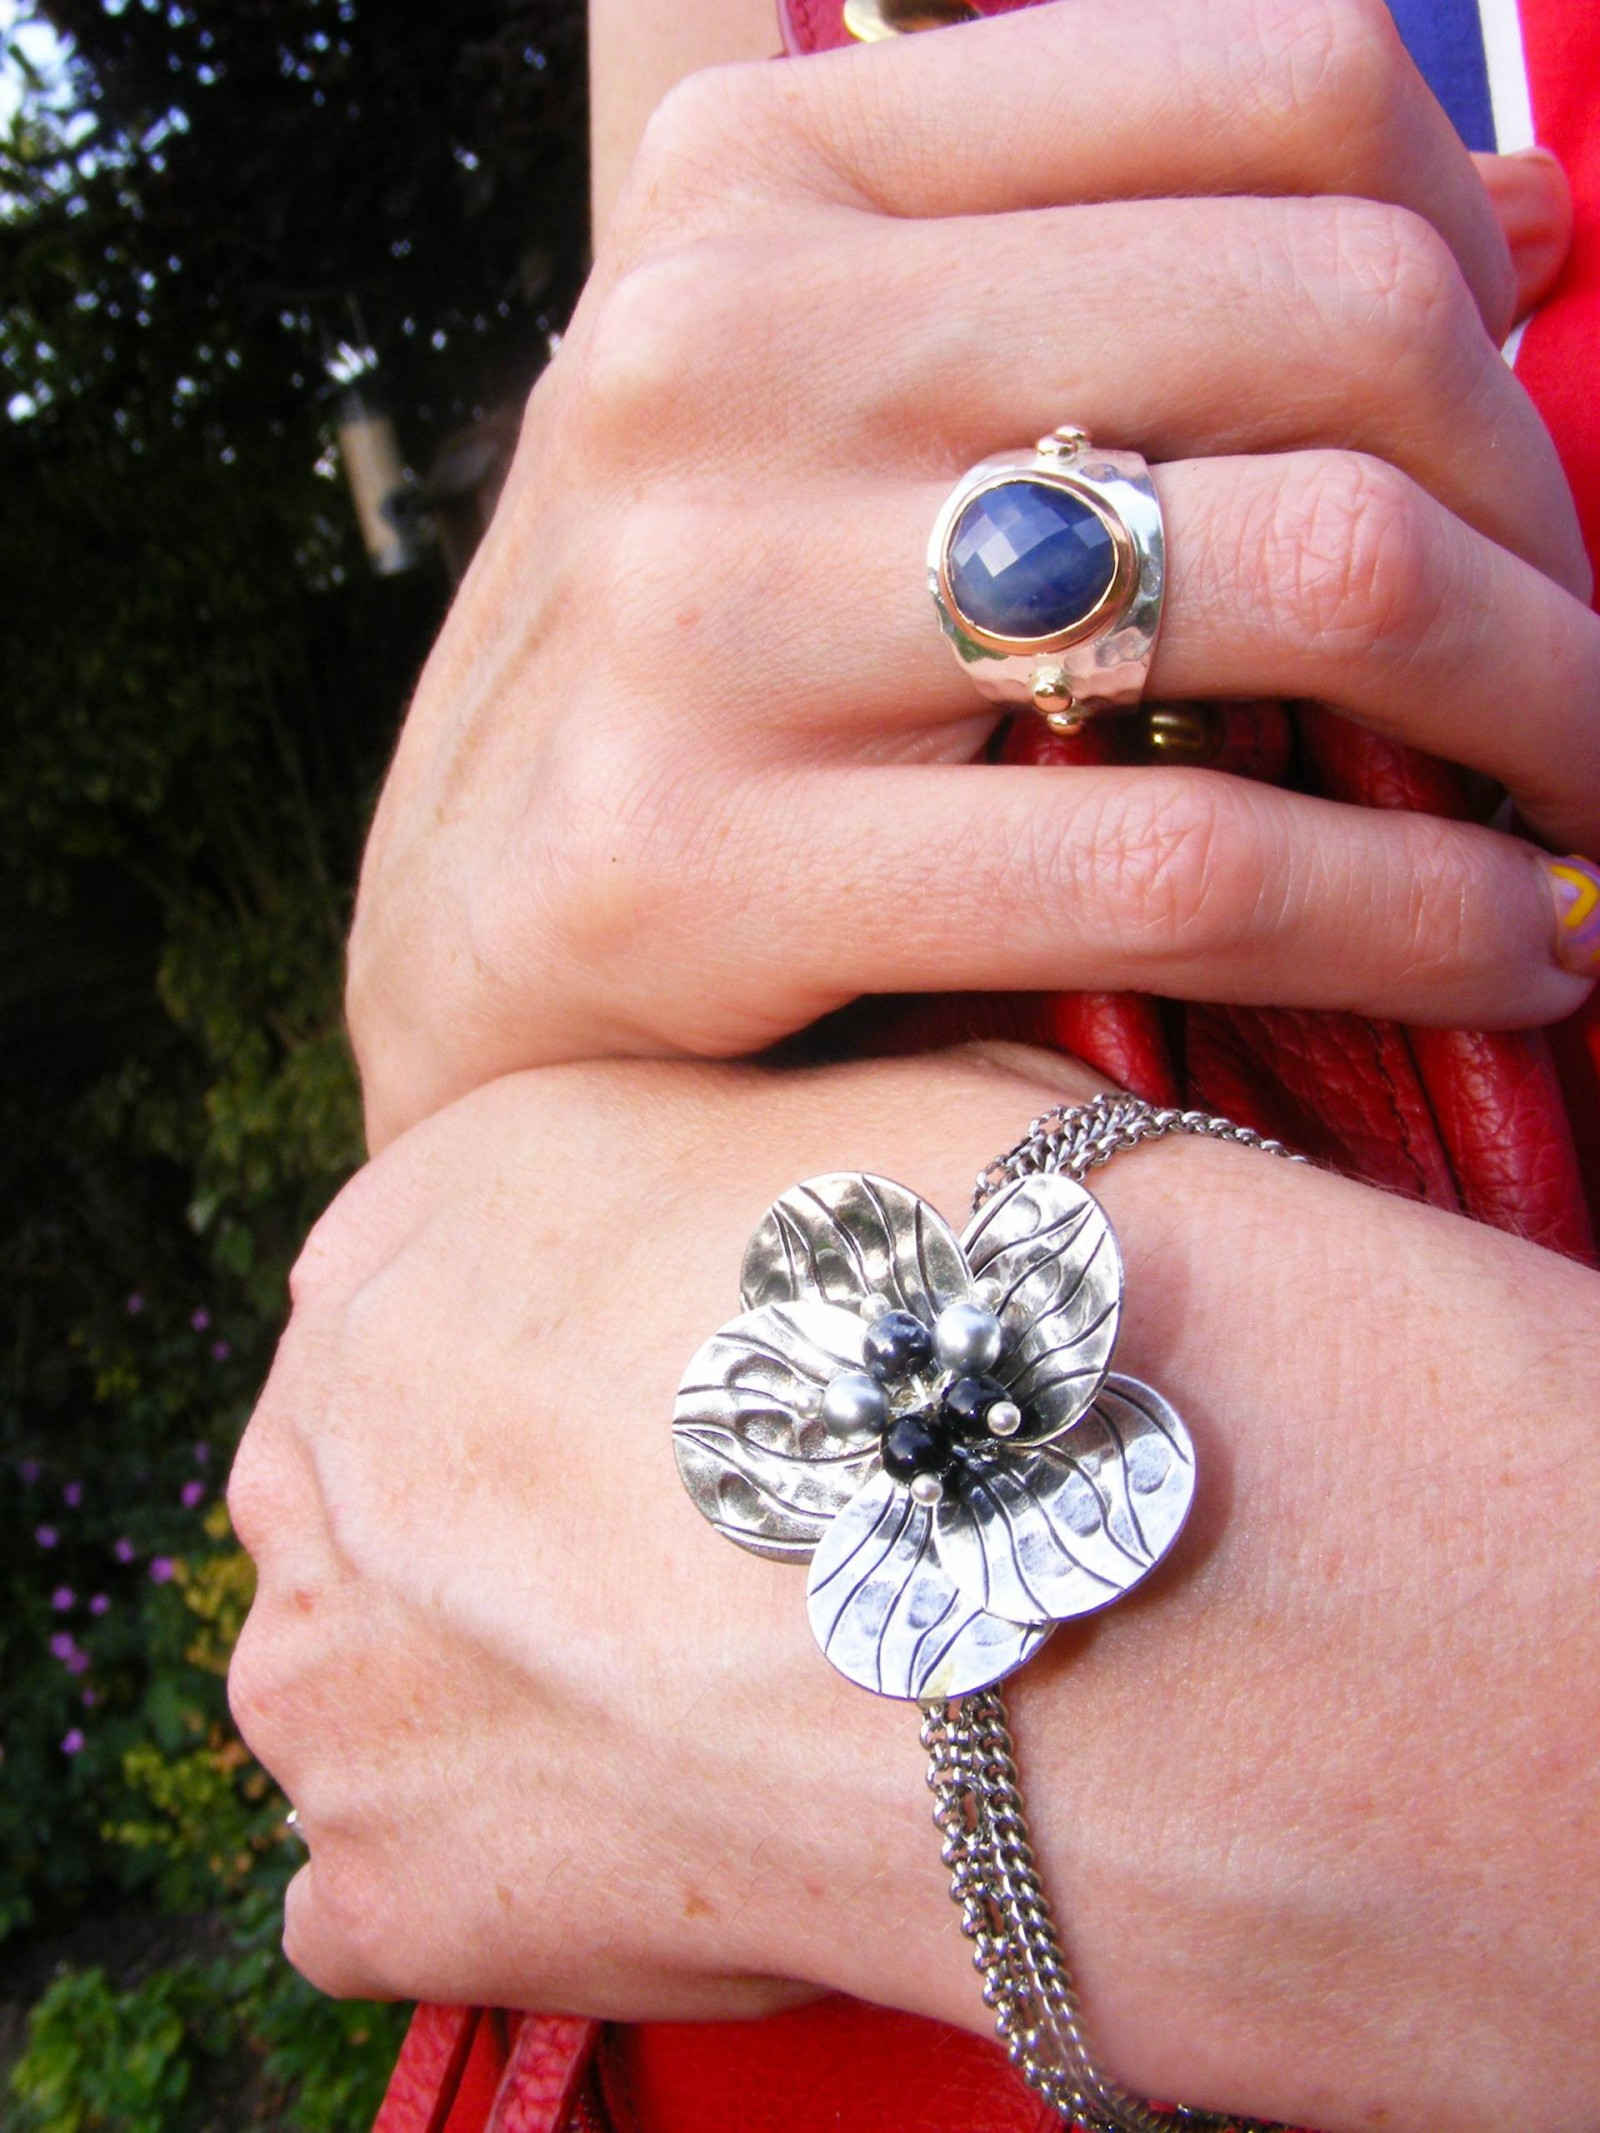 Pia silver ring and bracelet